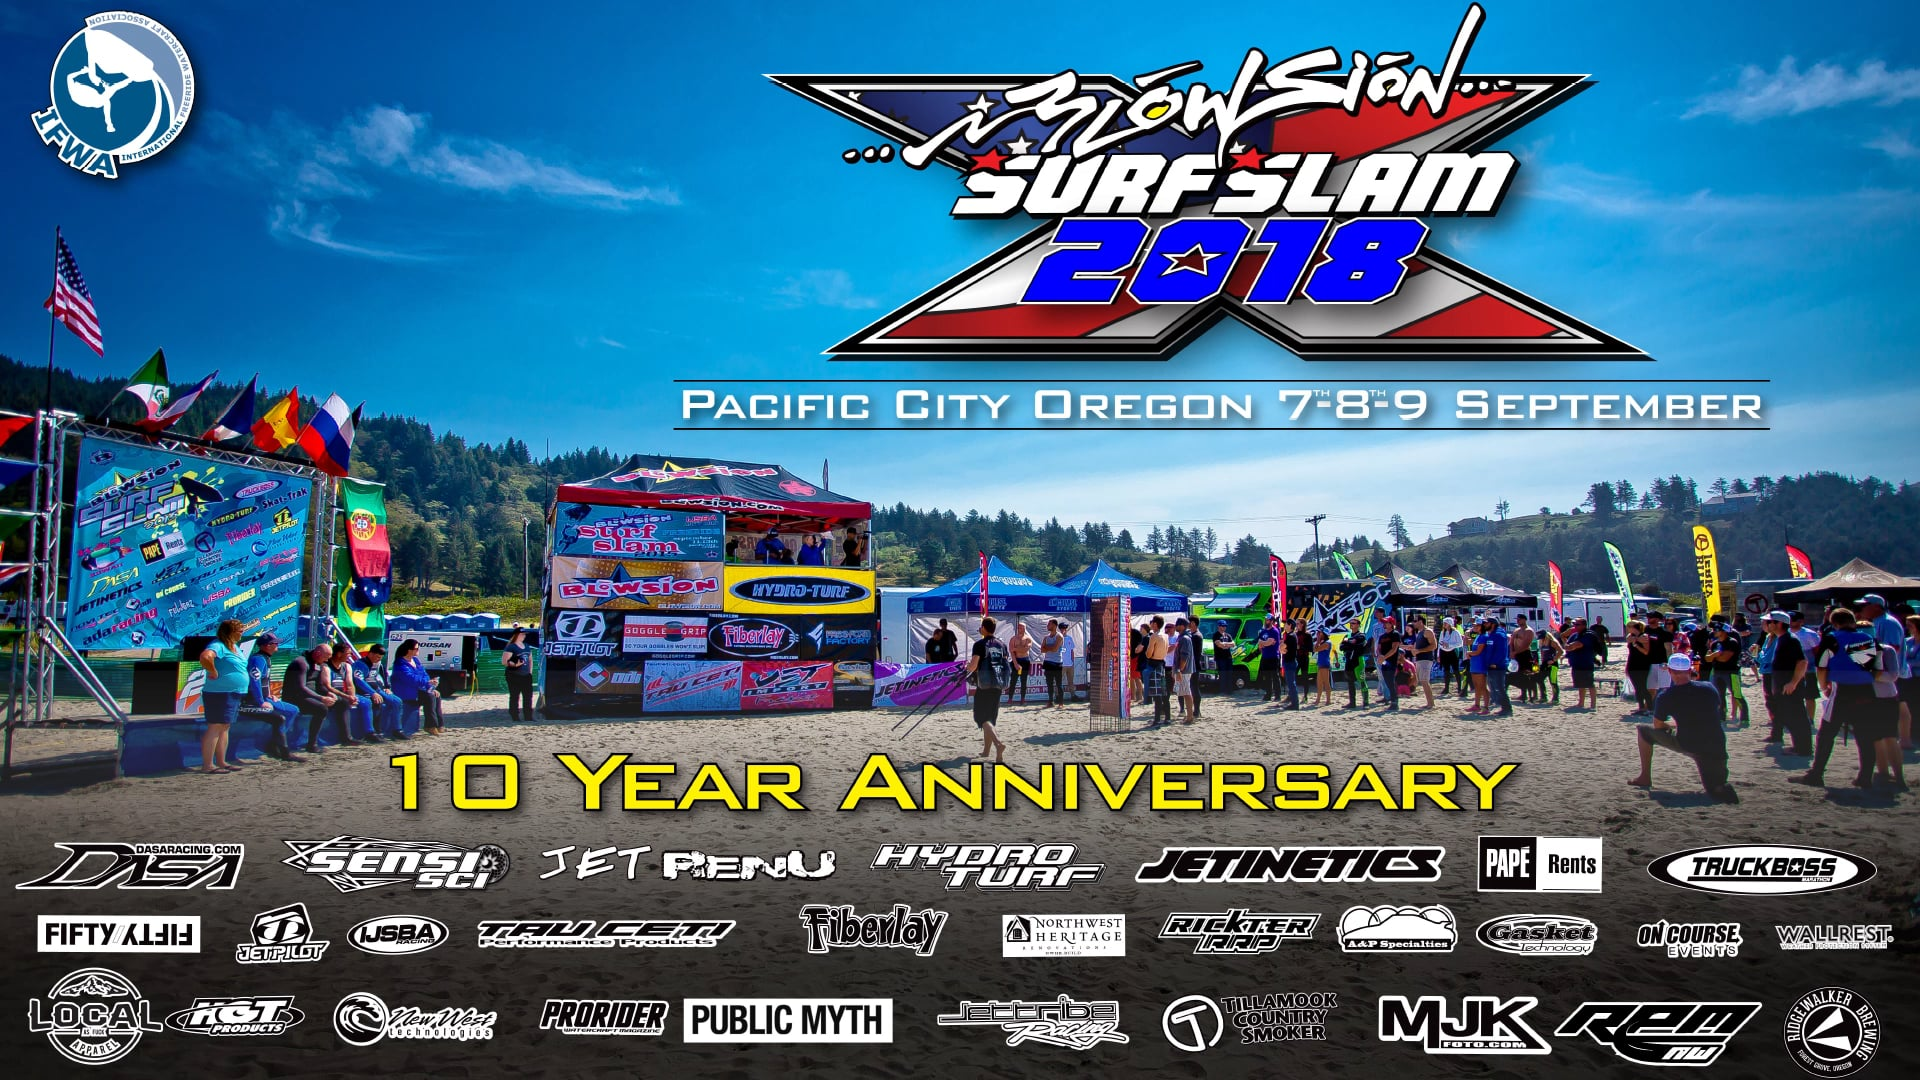 IFWA 2018 Freeride World Tour Stop 4: Blowsion SurfSlam Pacific City, Oregon USA - Sept 7-9th